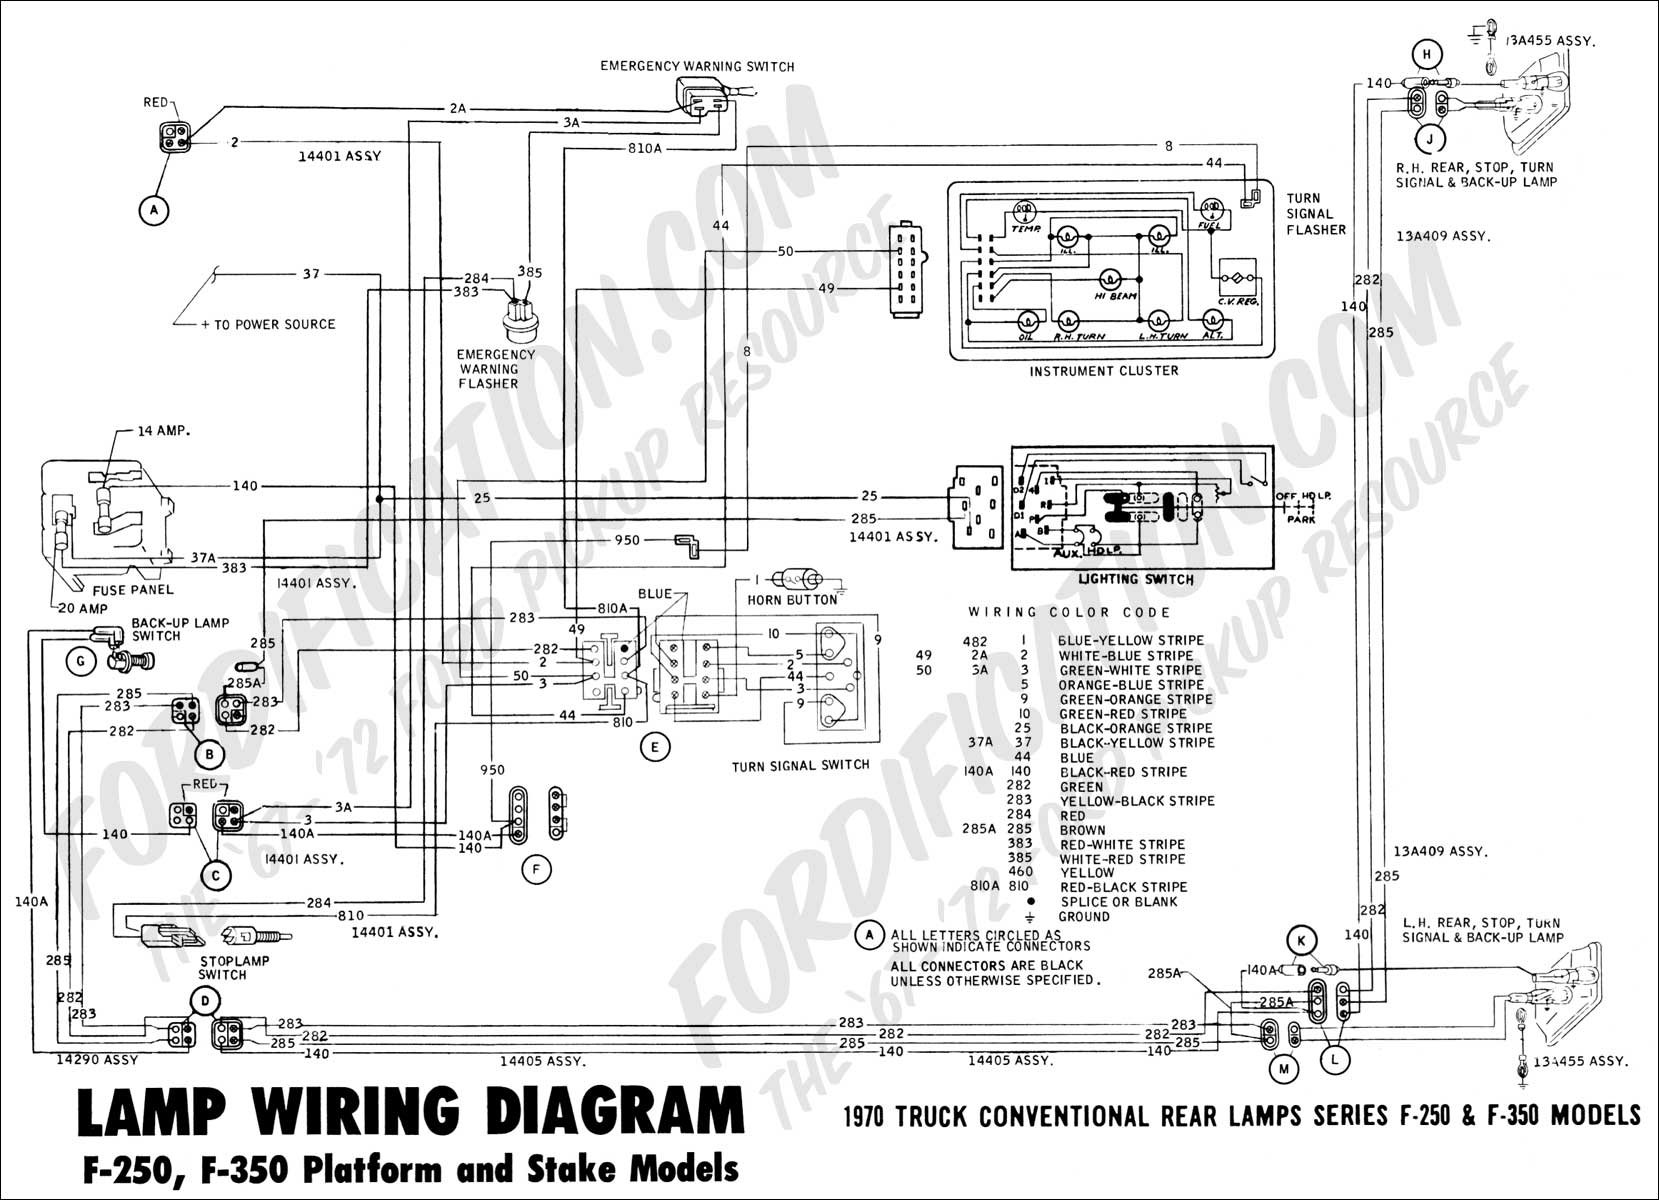 1990 F150 Wiring Diagram Bookmark About Trailer Light Uk 1992 Schema Diagrams Rh 2 Pur Tribute De Alternator Radio